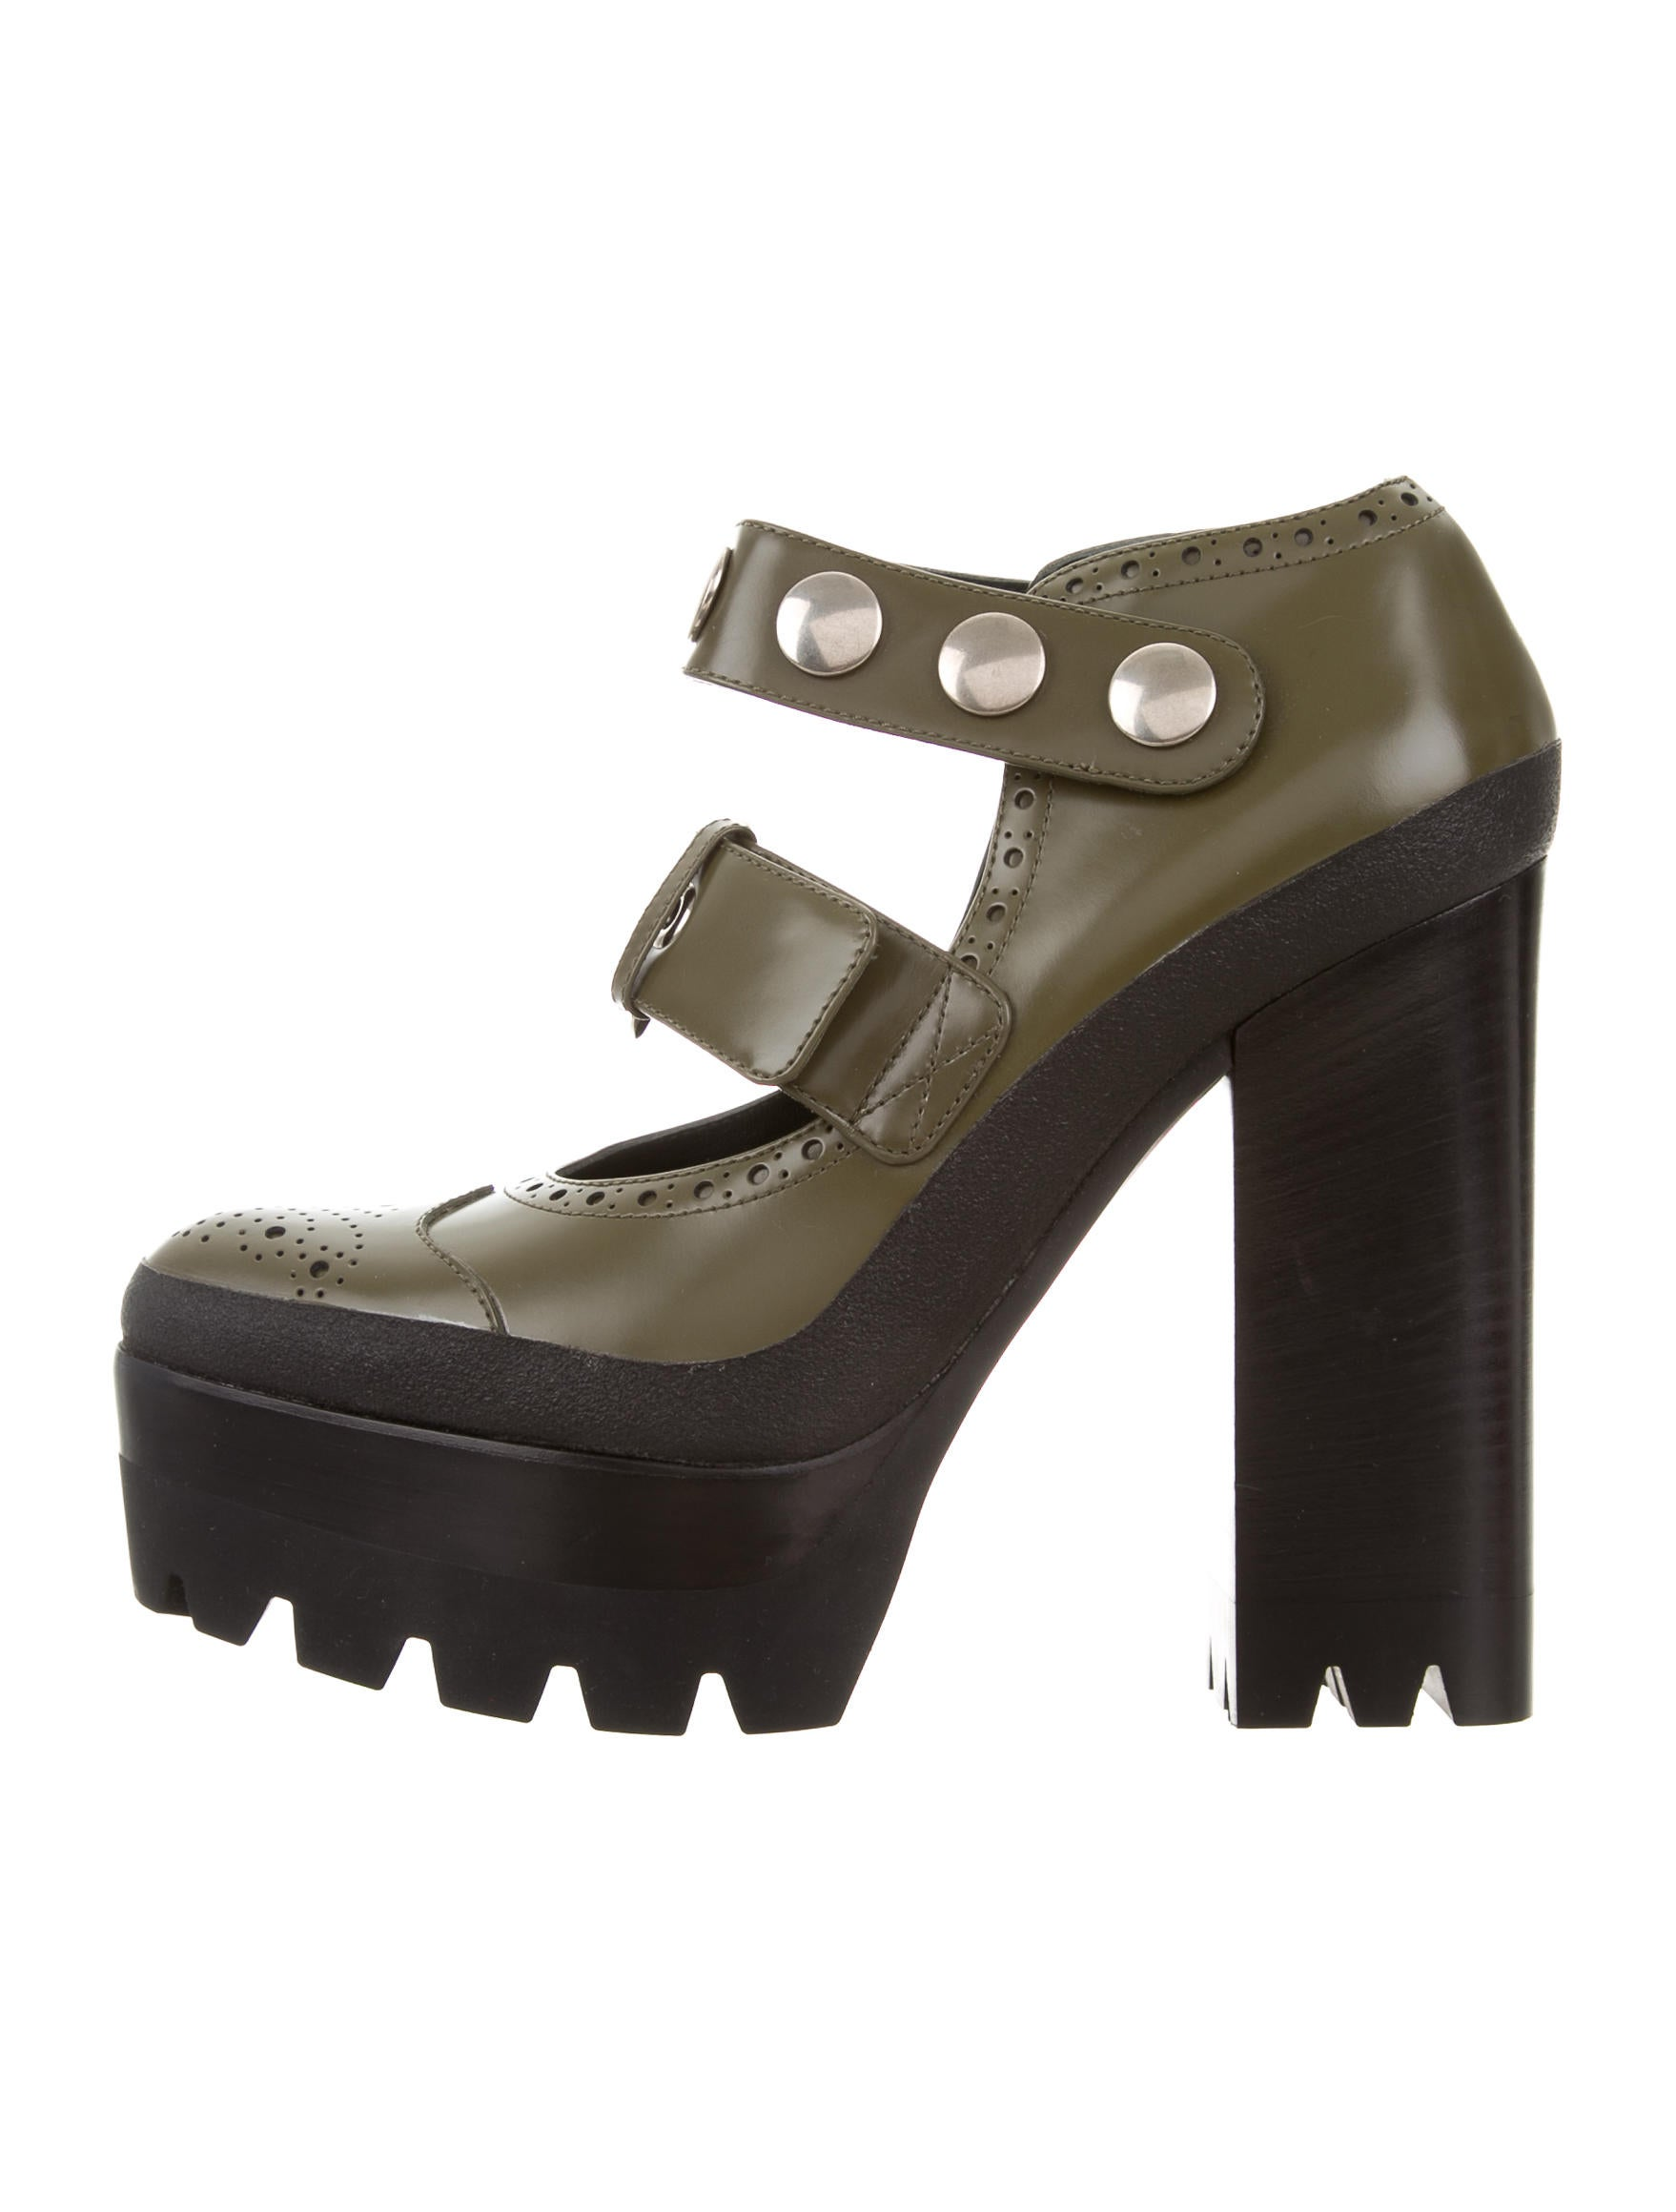 cheap sale get authentic outlet sast Mulberry Leather Platform Pumps cheap fast delivery the best store to get QP2hkI